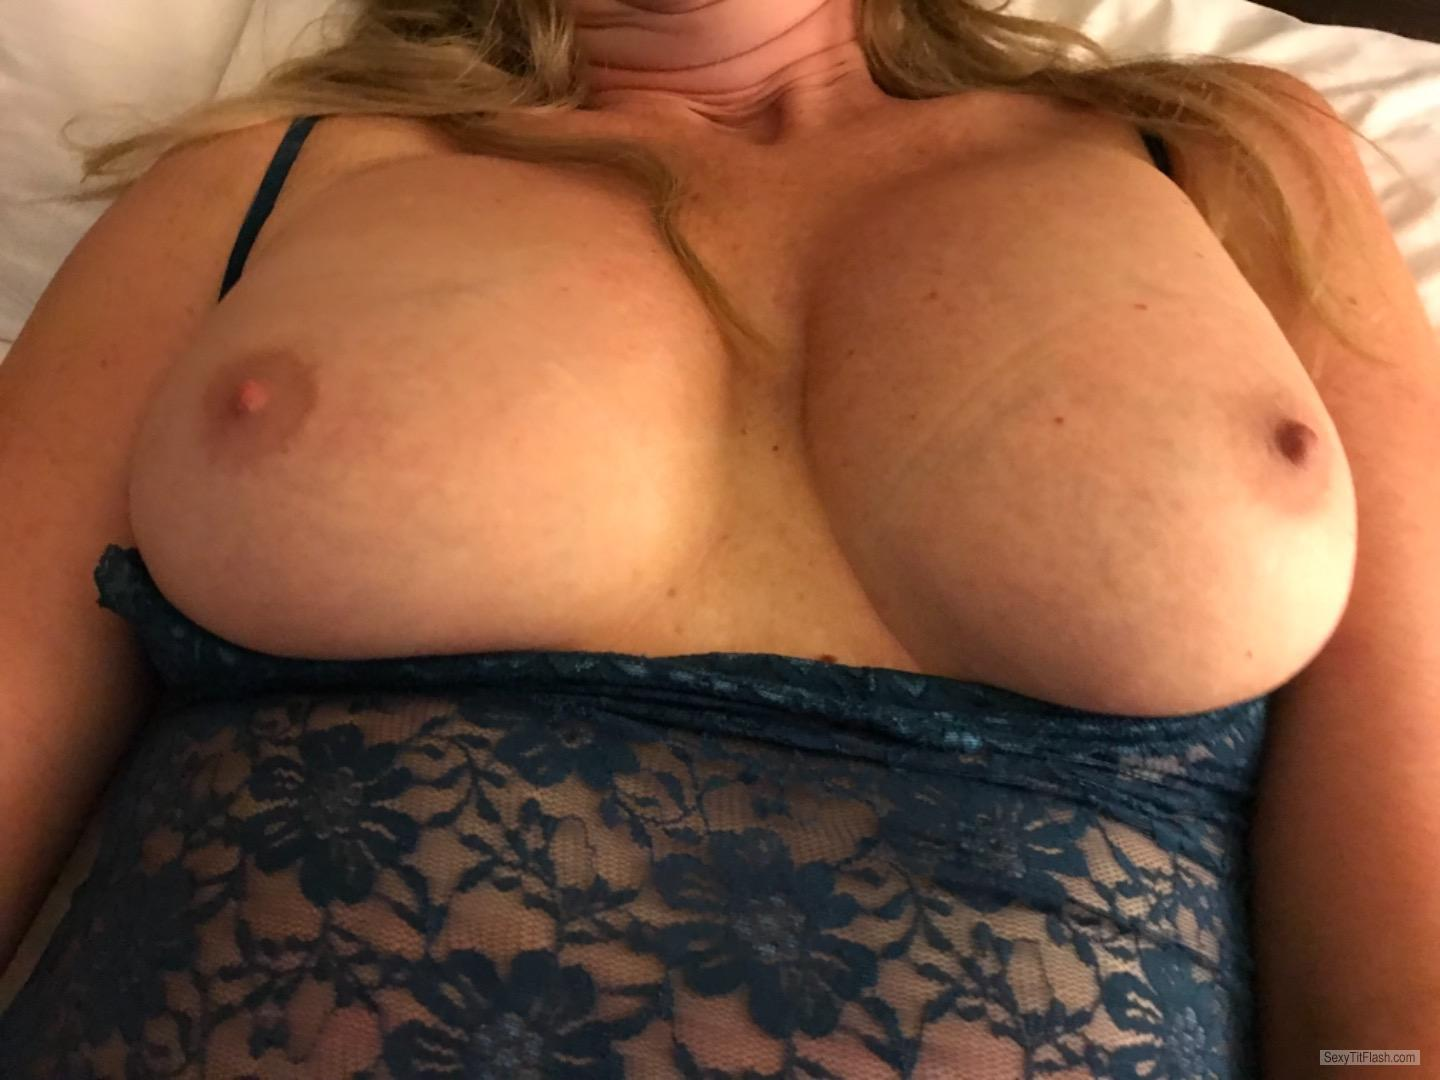 Tit Flash: Wife's Medium Tits - Wife After Wedding from United States